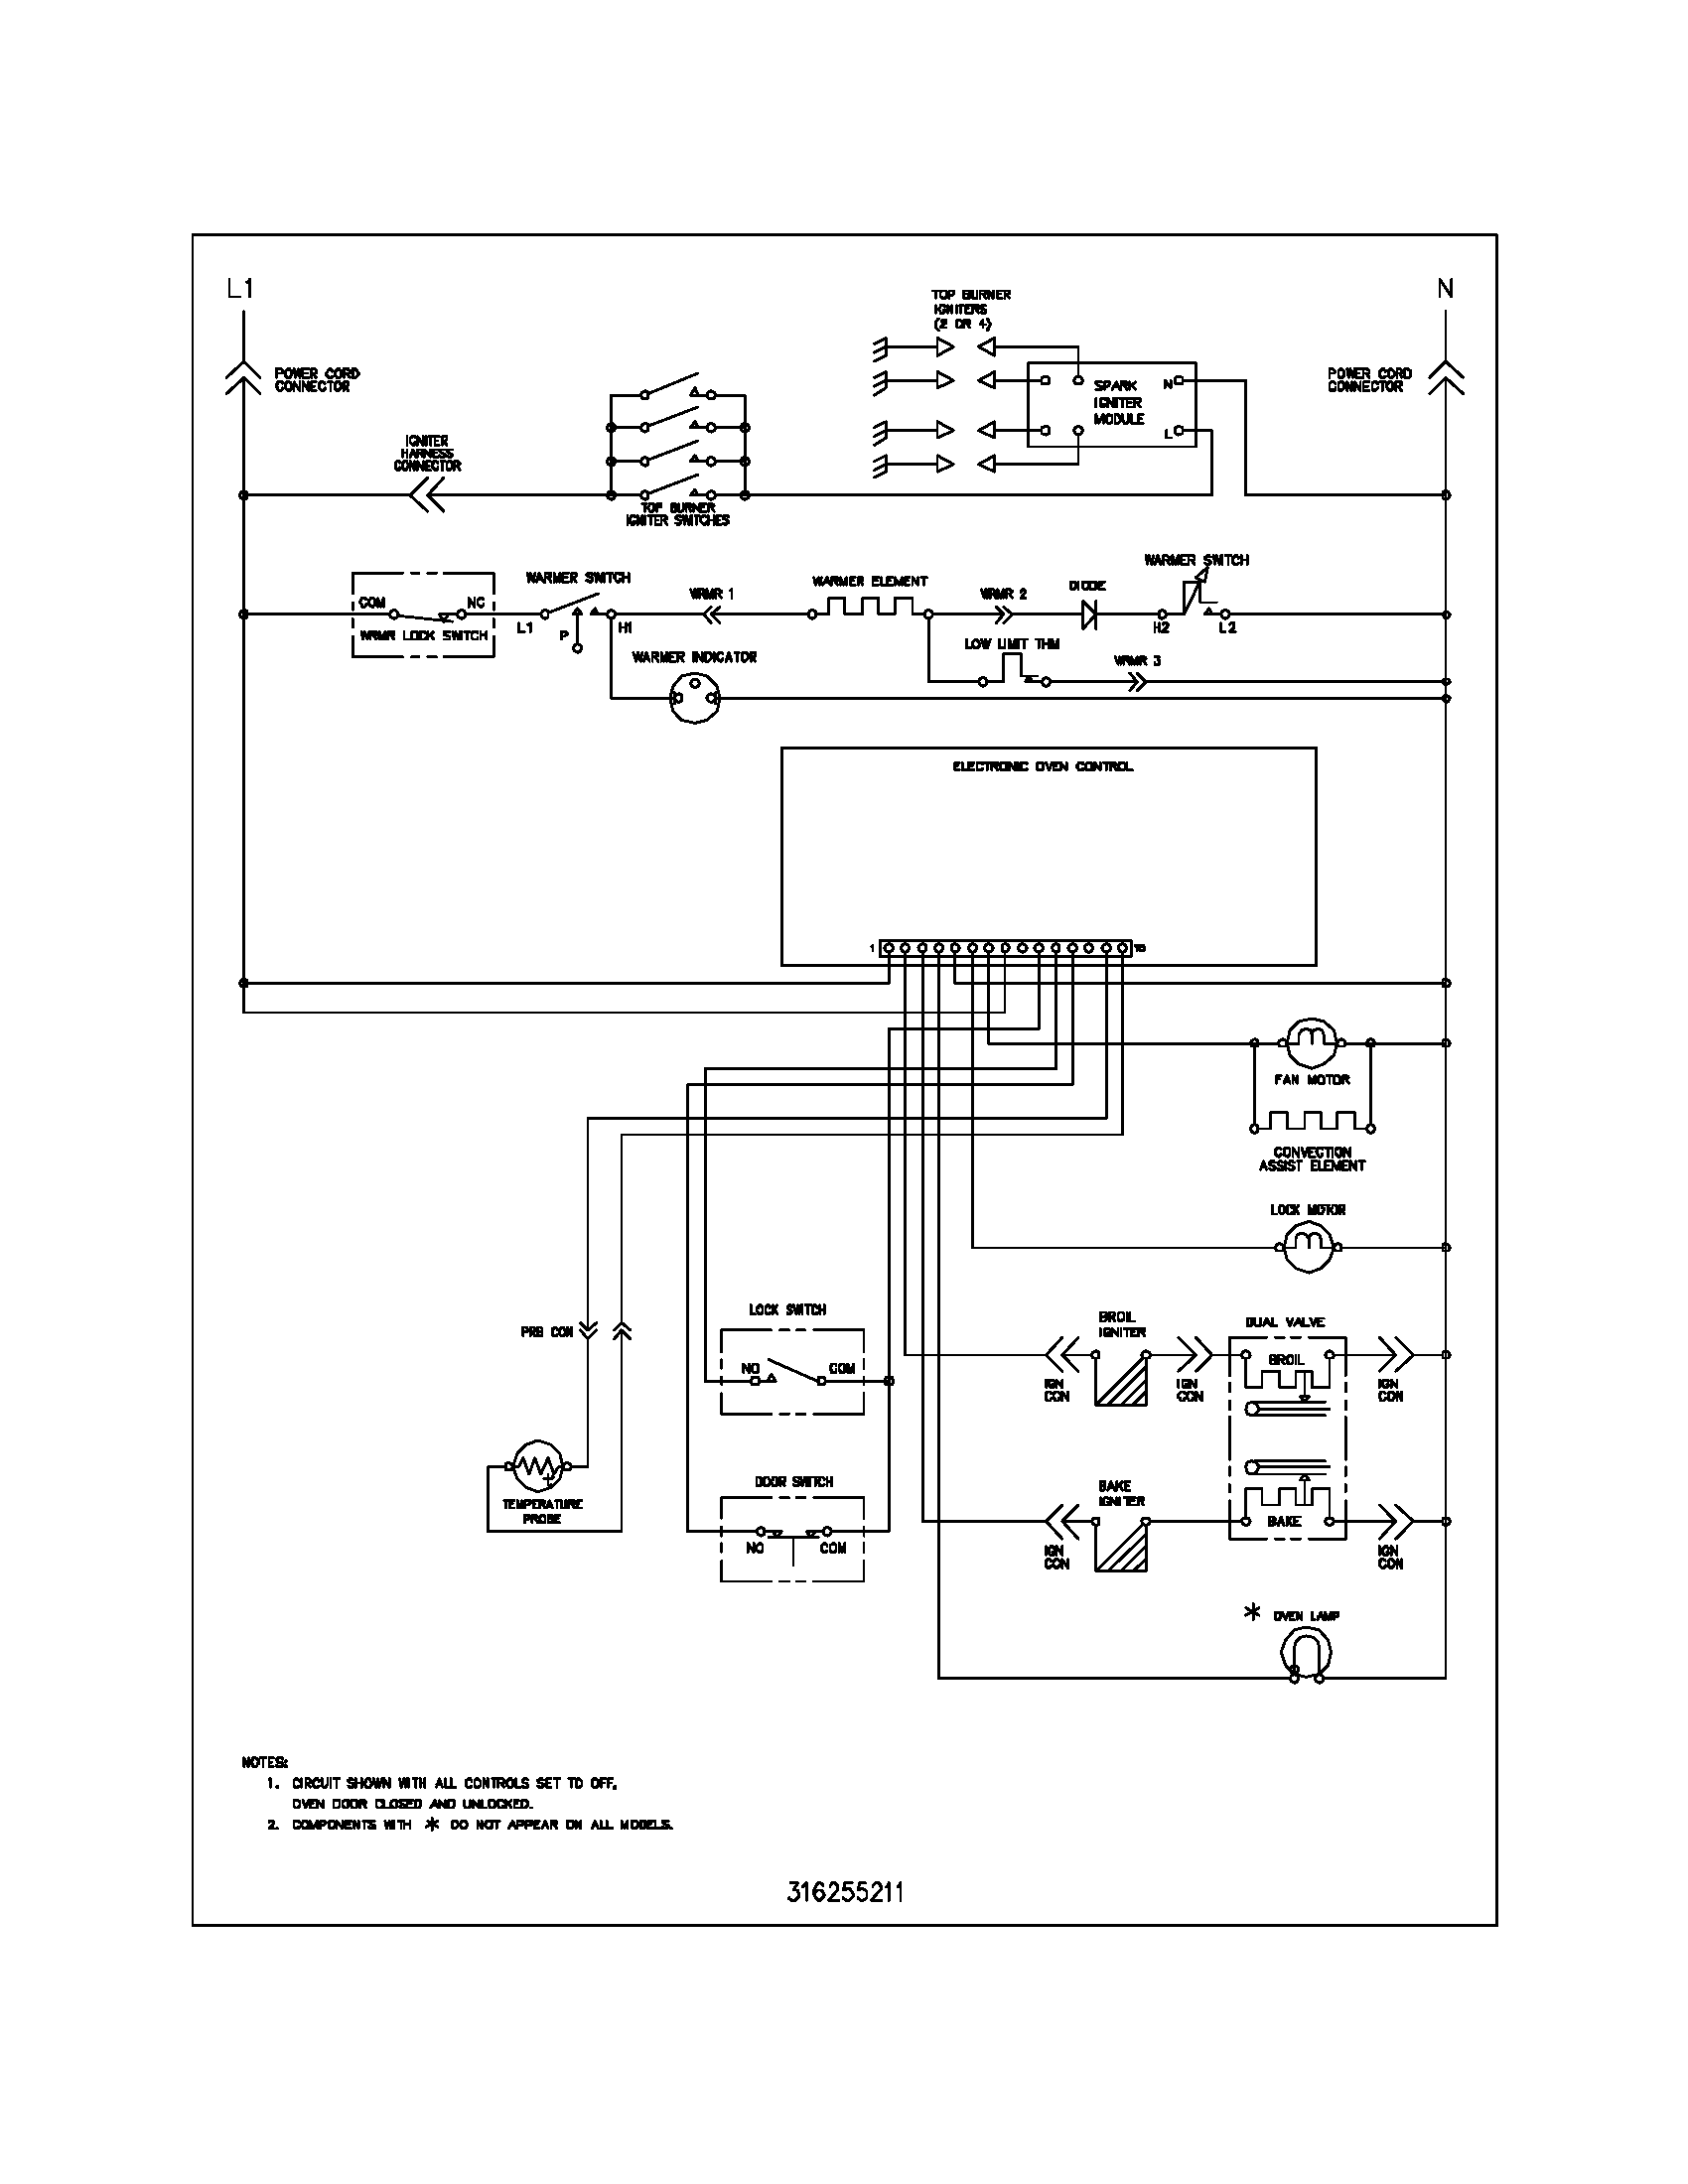 wiring schematic parts frigidaire plgf389ccc gas range timer stove clocks and appliance Old Furnace Wiring Diagram at readyjetset.co